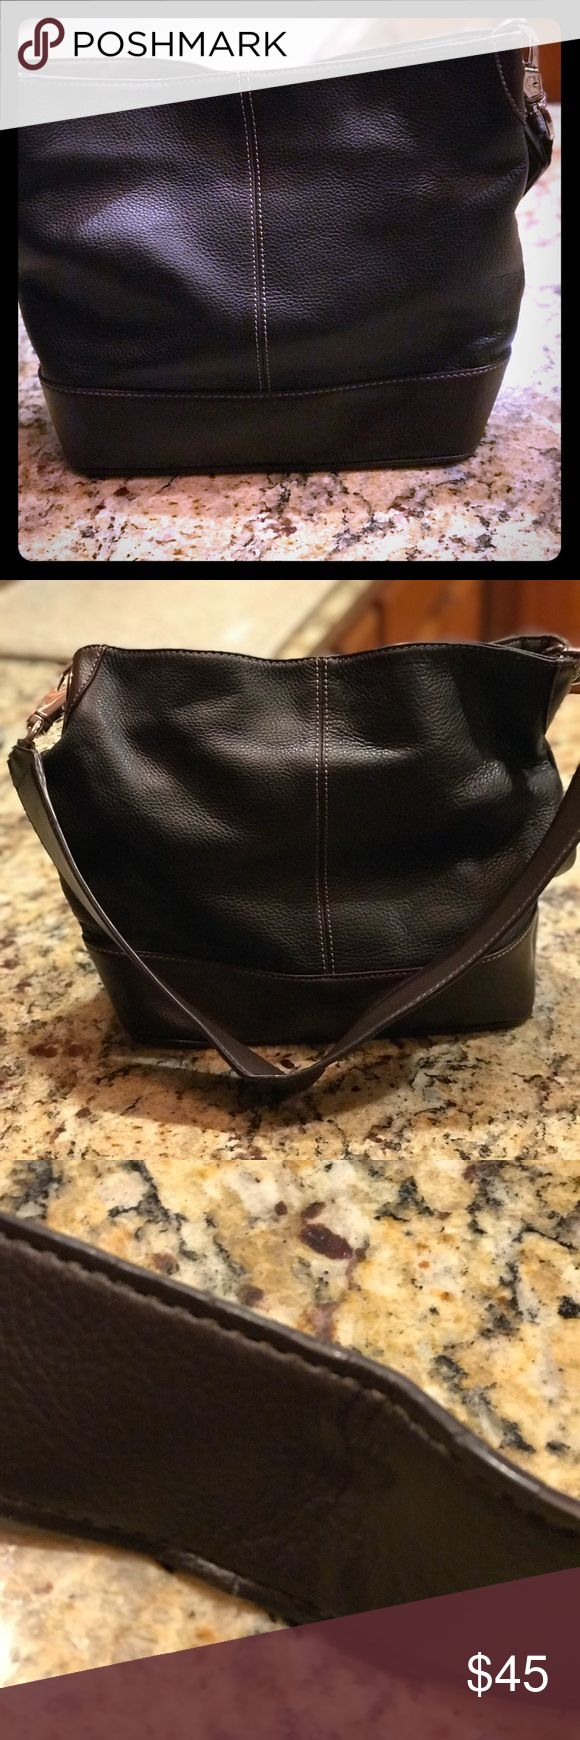 Tignanello Handbag Black and brown Tignanello Handbag with silver hardware. Good condition. Only flaw is on the middle of the strap where it was hung on a hook. Perfect size for every day. Tignanello Bags Shoulder Bags